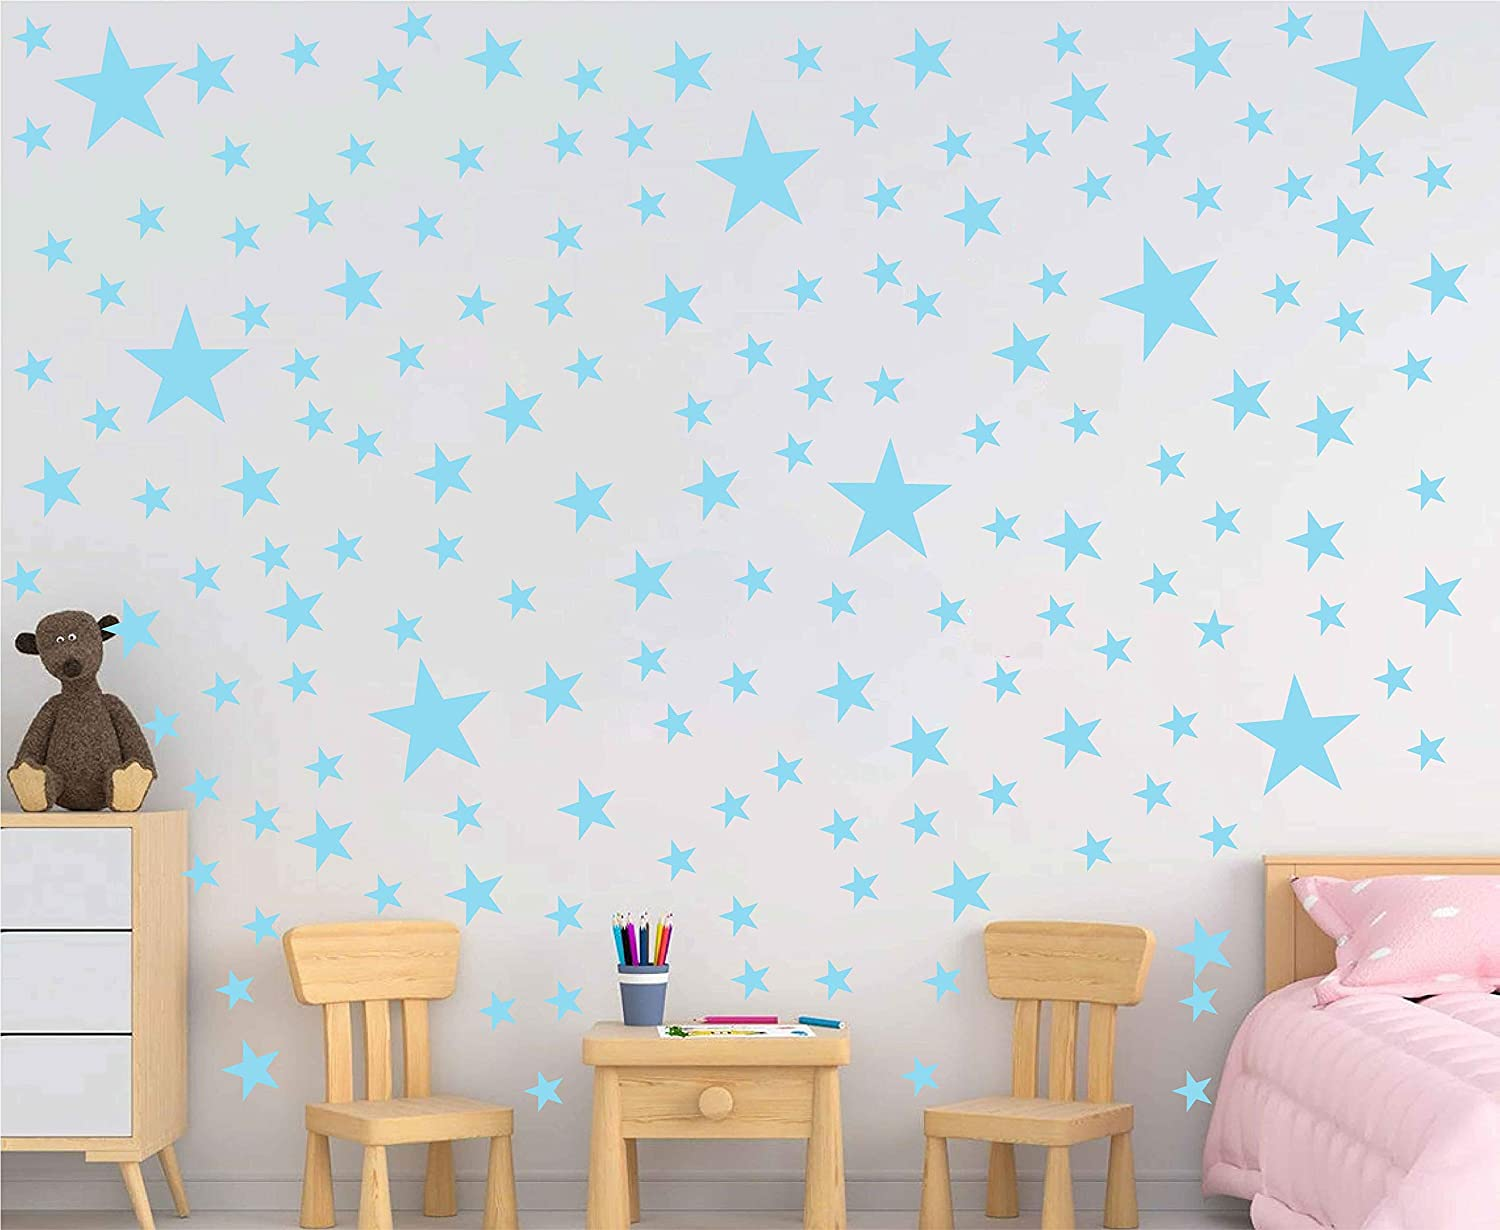 Melissalove 174pcs Mixed Size Star Wall Stickers Home Decor Bedroom Removable Nursery Wall Decals Kids DIY Art Decal Gold White Black Star Wall Sticker JW343 (Canal Blue)